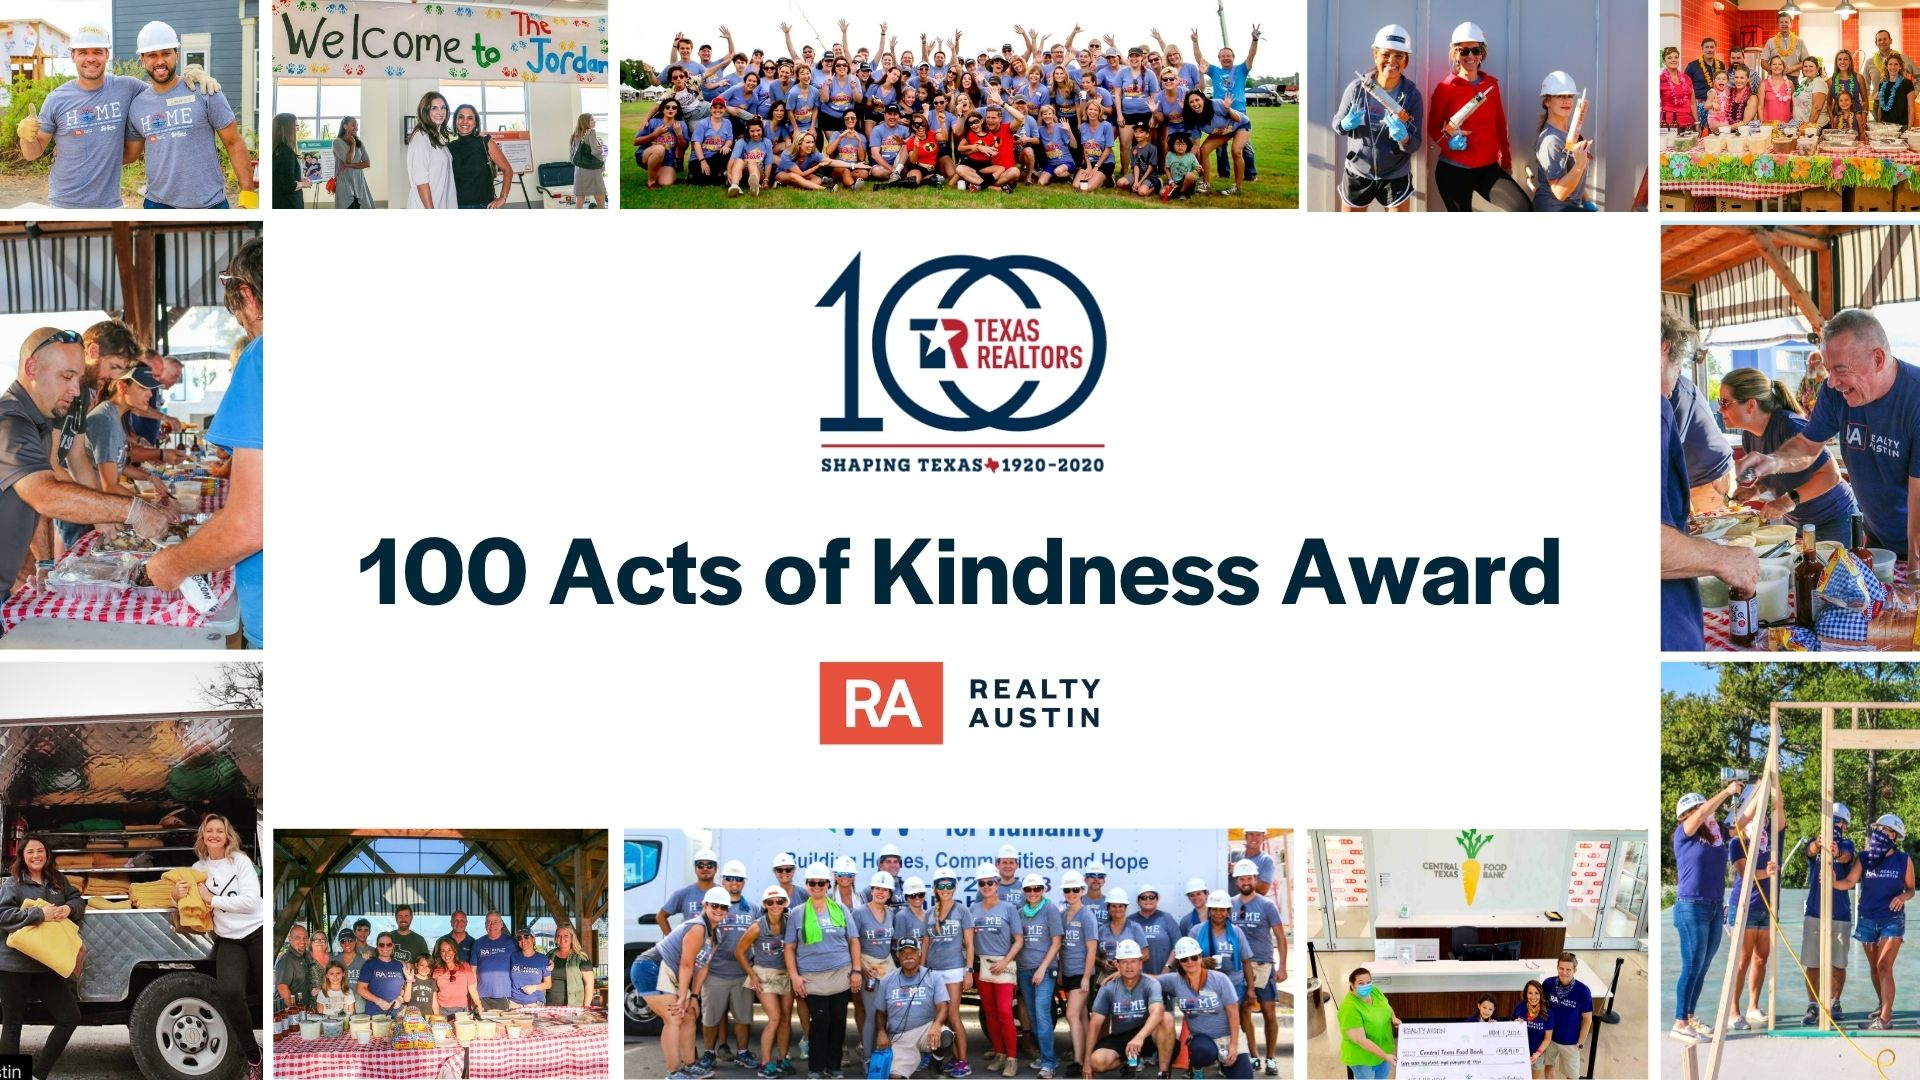 Realty Austin Honored as a Recipient of TAR 100 Acts of Kindness Award